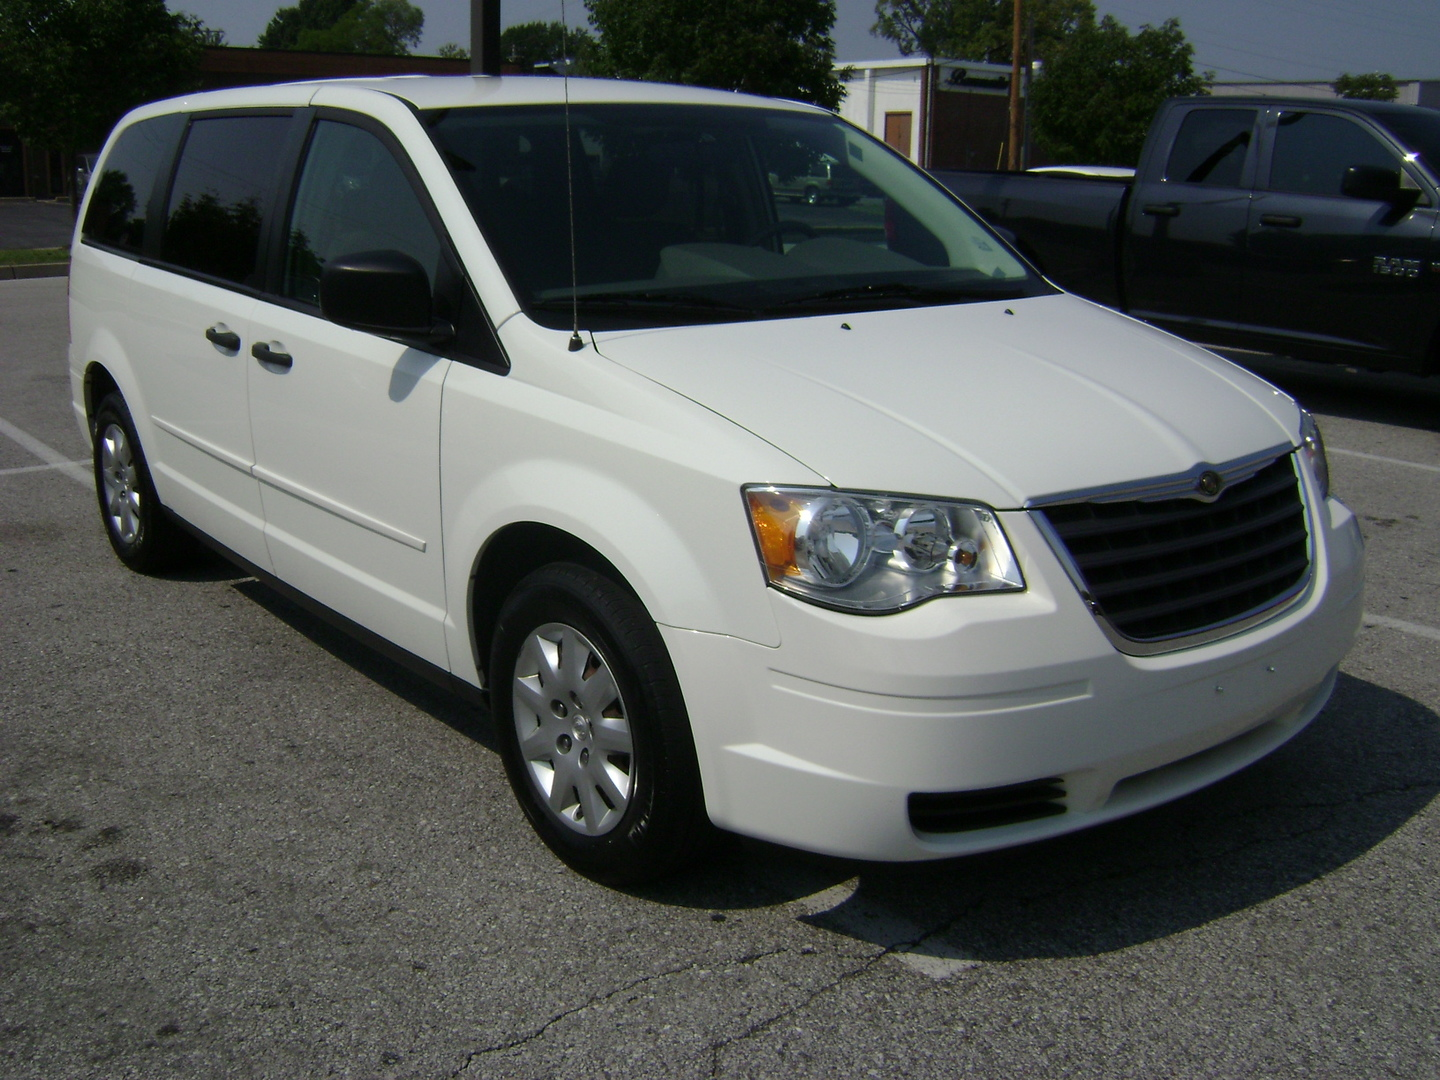 2008 chrysler town and country lx 4dr minivan 3 3l 6cyl 4a. Black Bedroom Furniture Sets. Home Design Ideas